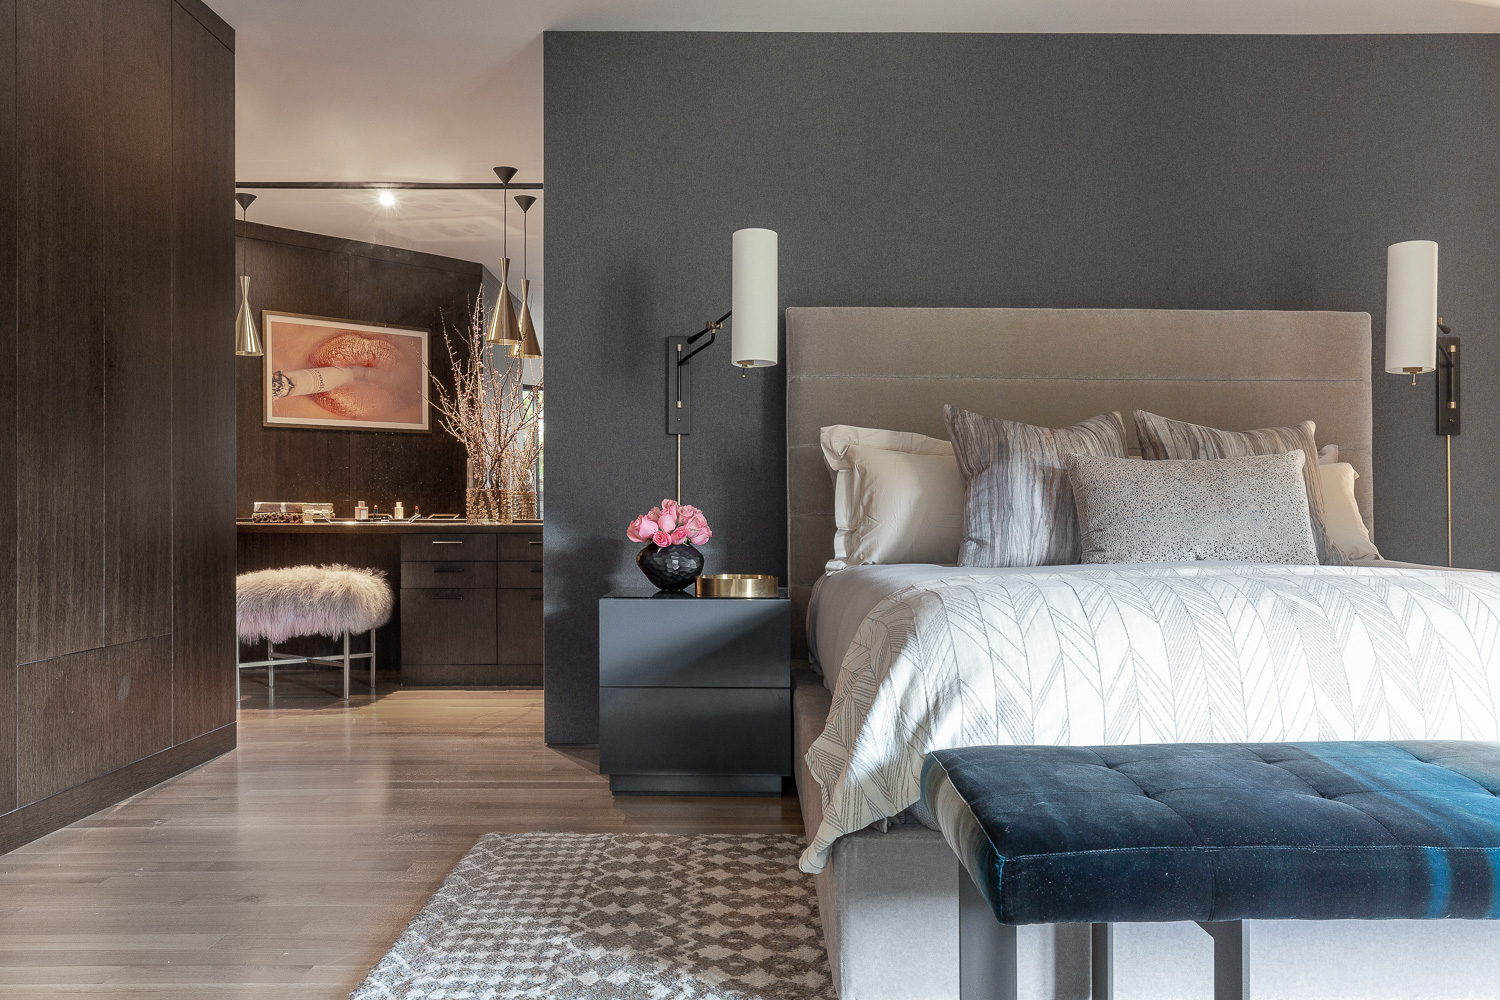 A Restoration Hardware bed frame is the centerpiece of the master bedroom.Winfield Thybony Design wallpaper brings a lush atmosphere to the room, while a patterned rug fromHaute Textile Flooring adds an extra dose of texture. Custom nightstands from Ciarlo Brothers stand guard on either side of the bed beneath sconces byAerin For Visual Comfort. To the left, the vanity area is visible, where a bench from Outpost Original offsets its wood surroundings.The bench at the foot of the bed was sourced from Lee Industries.